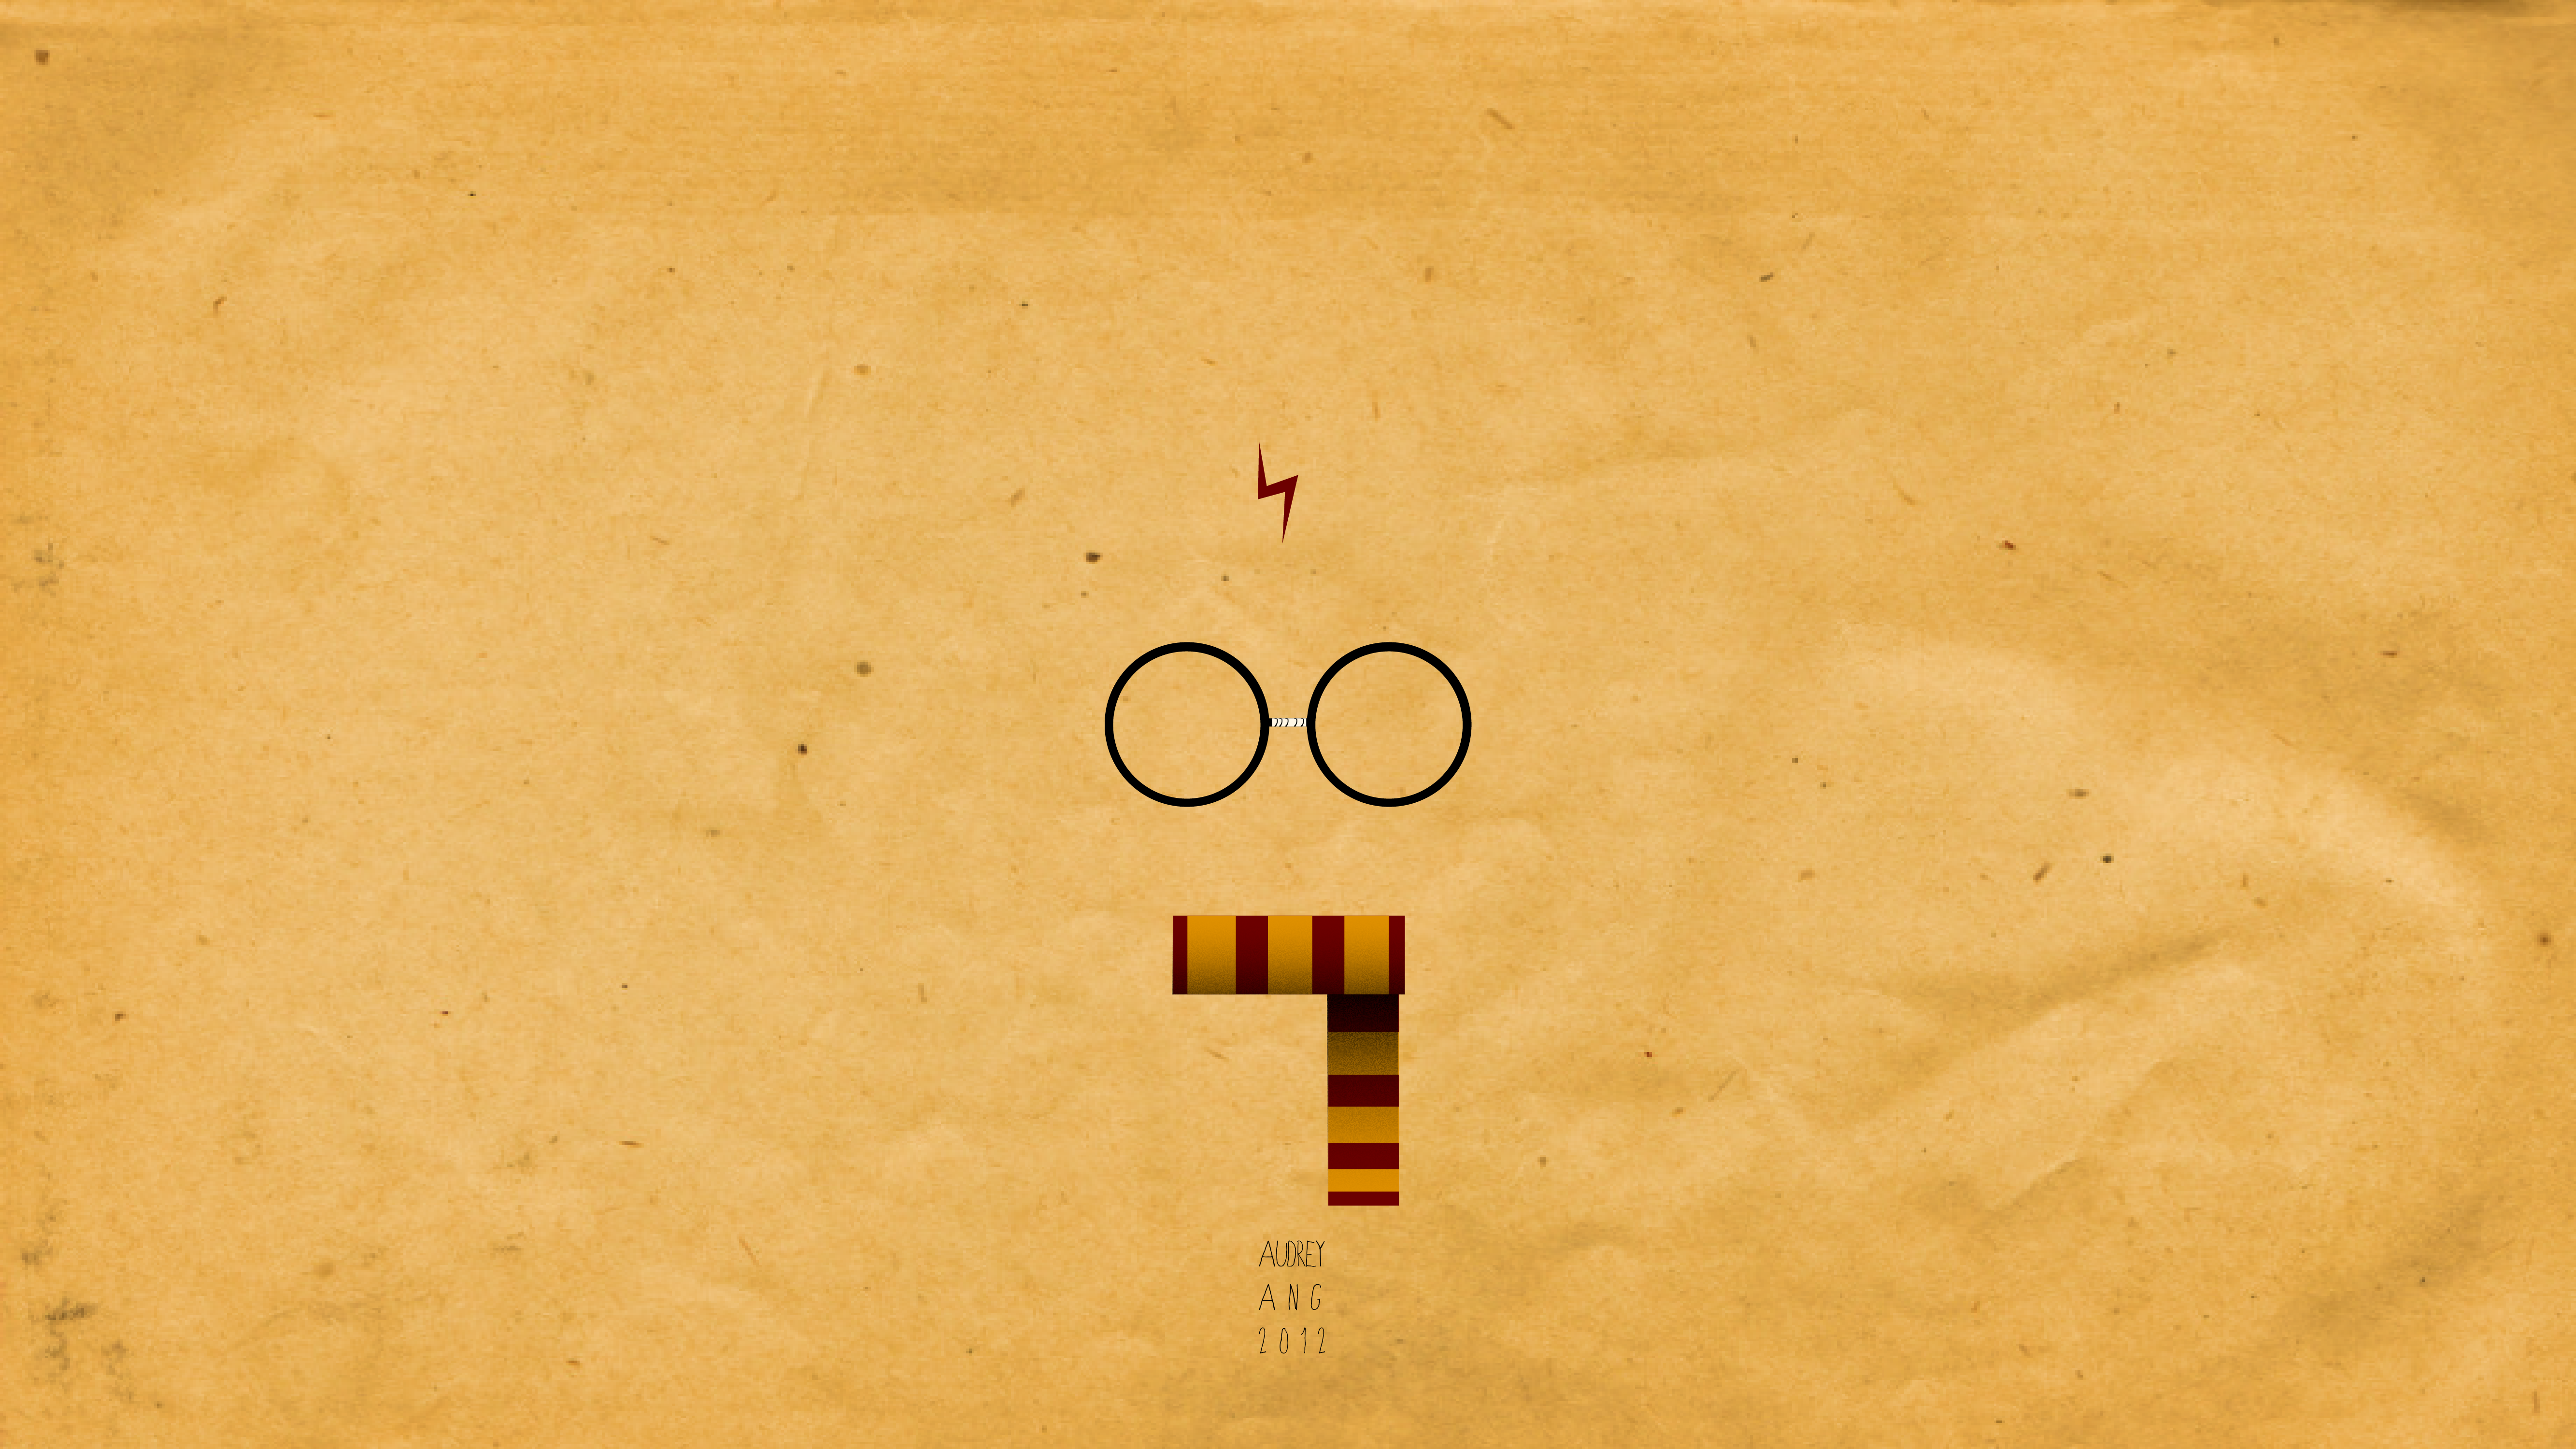 47 Cute Harry Potter Wallpaper On Wallpapersafari